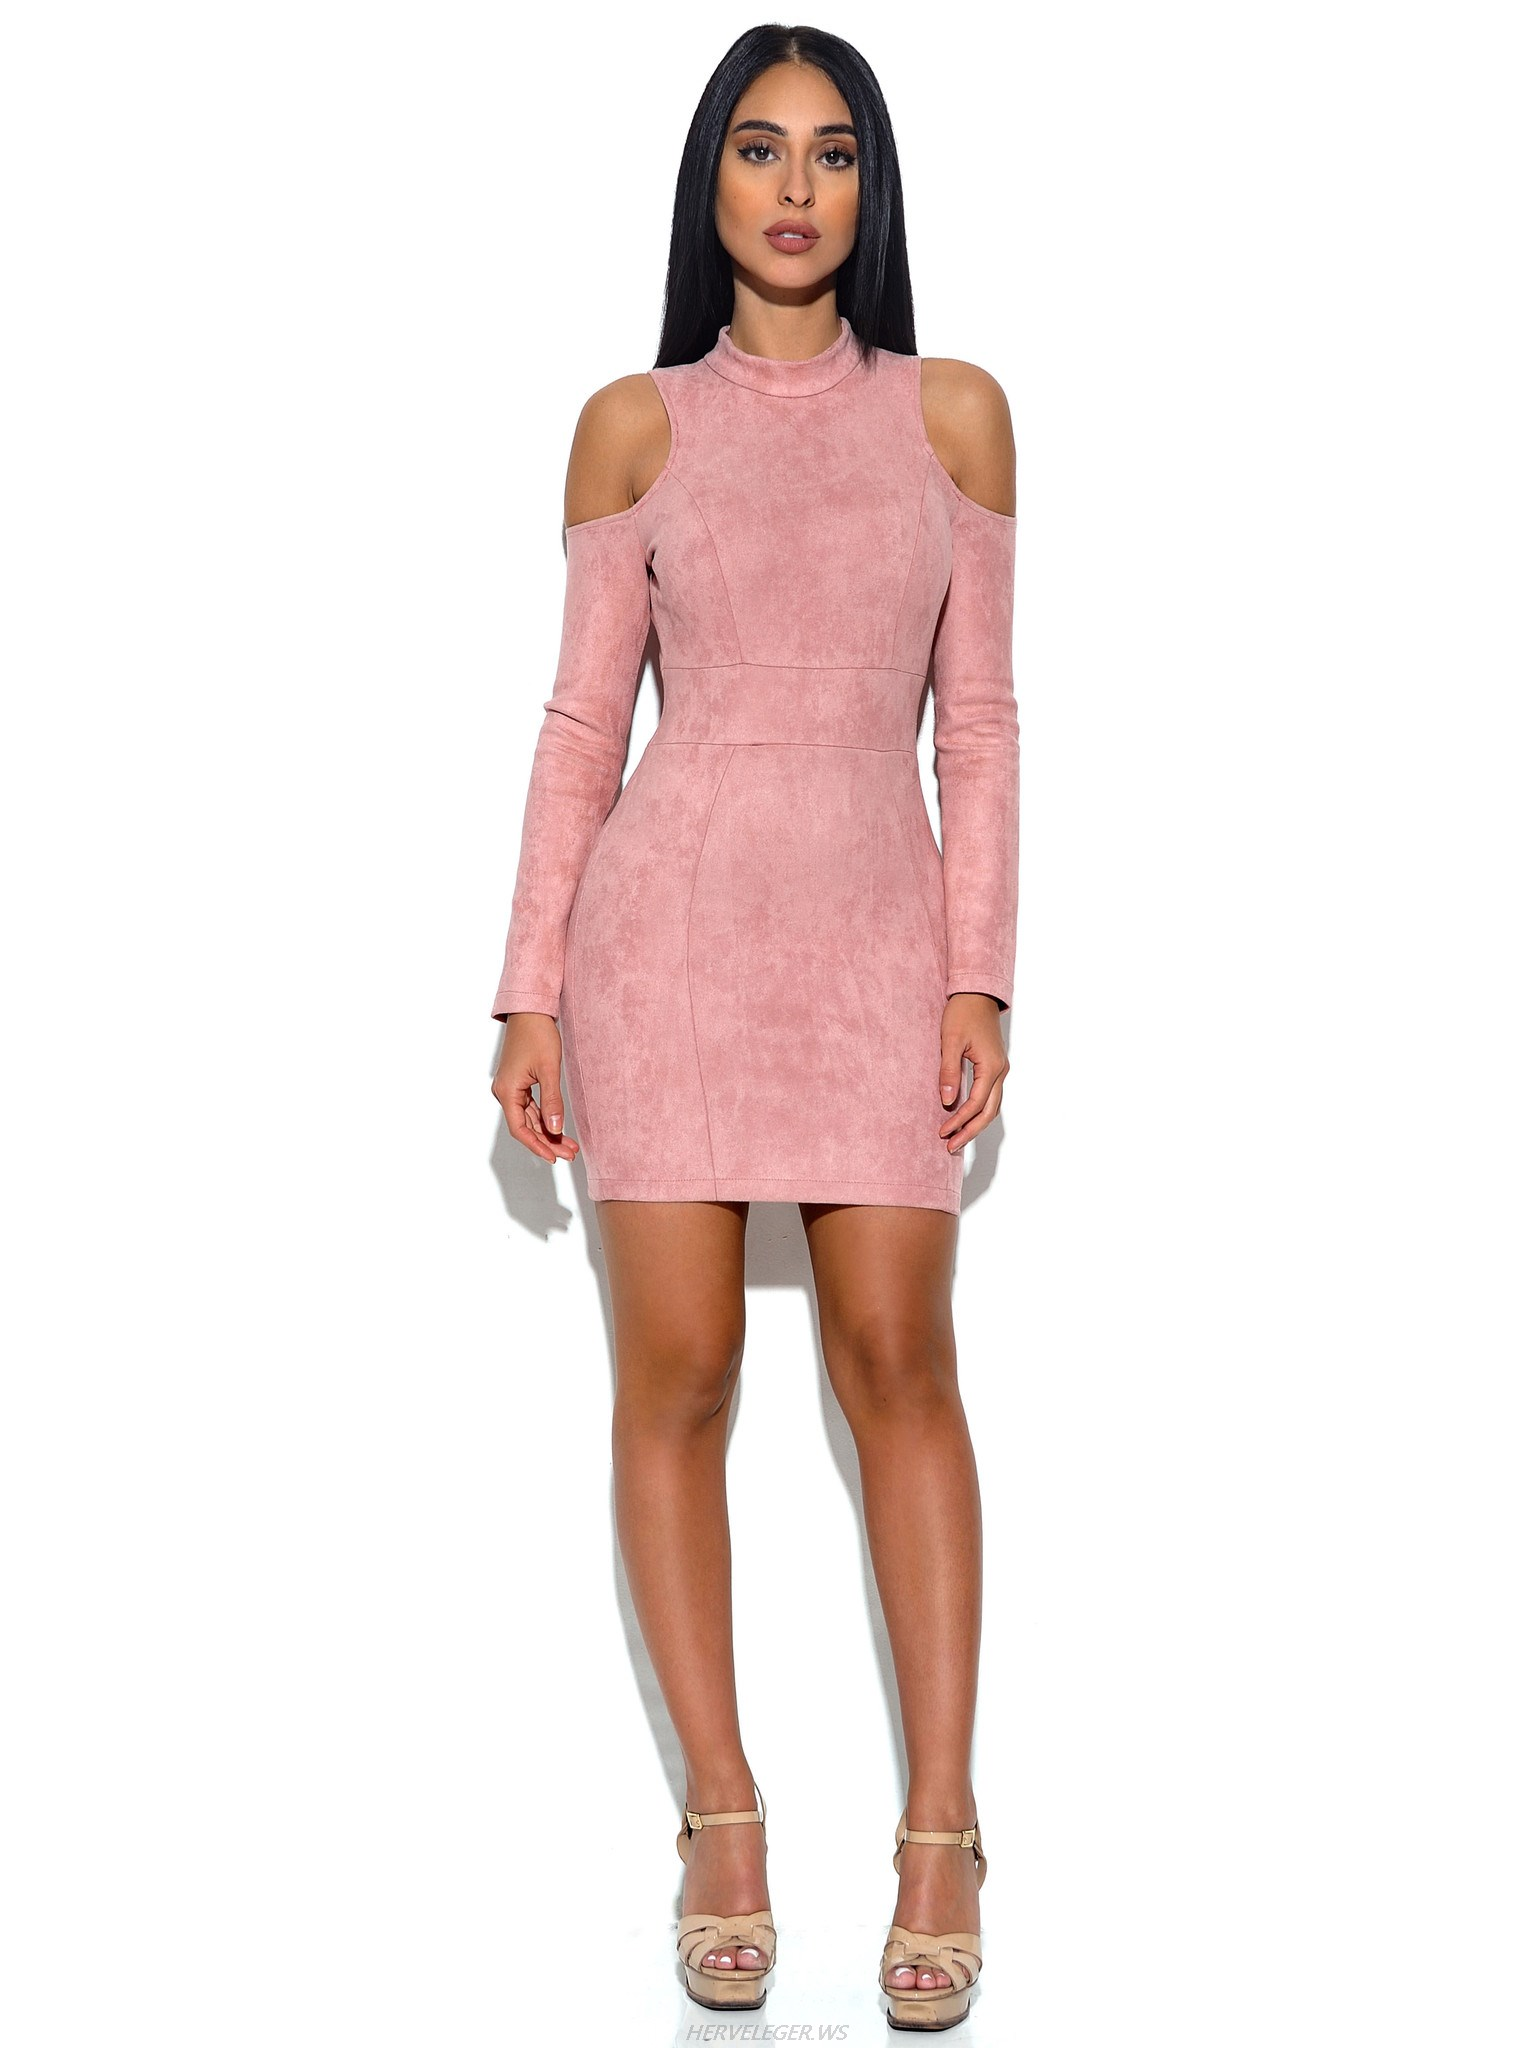 Herve Leger Pink Shoulder Cut Out Suede Dress